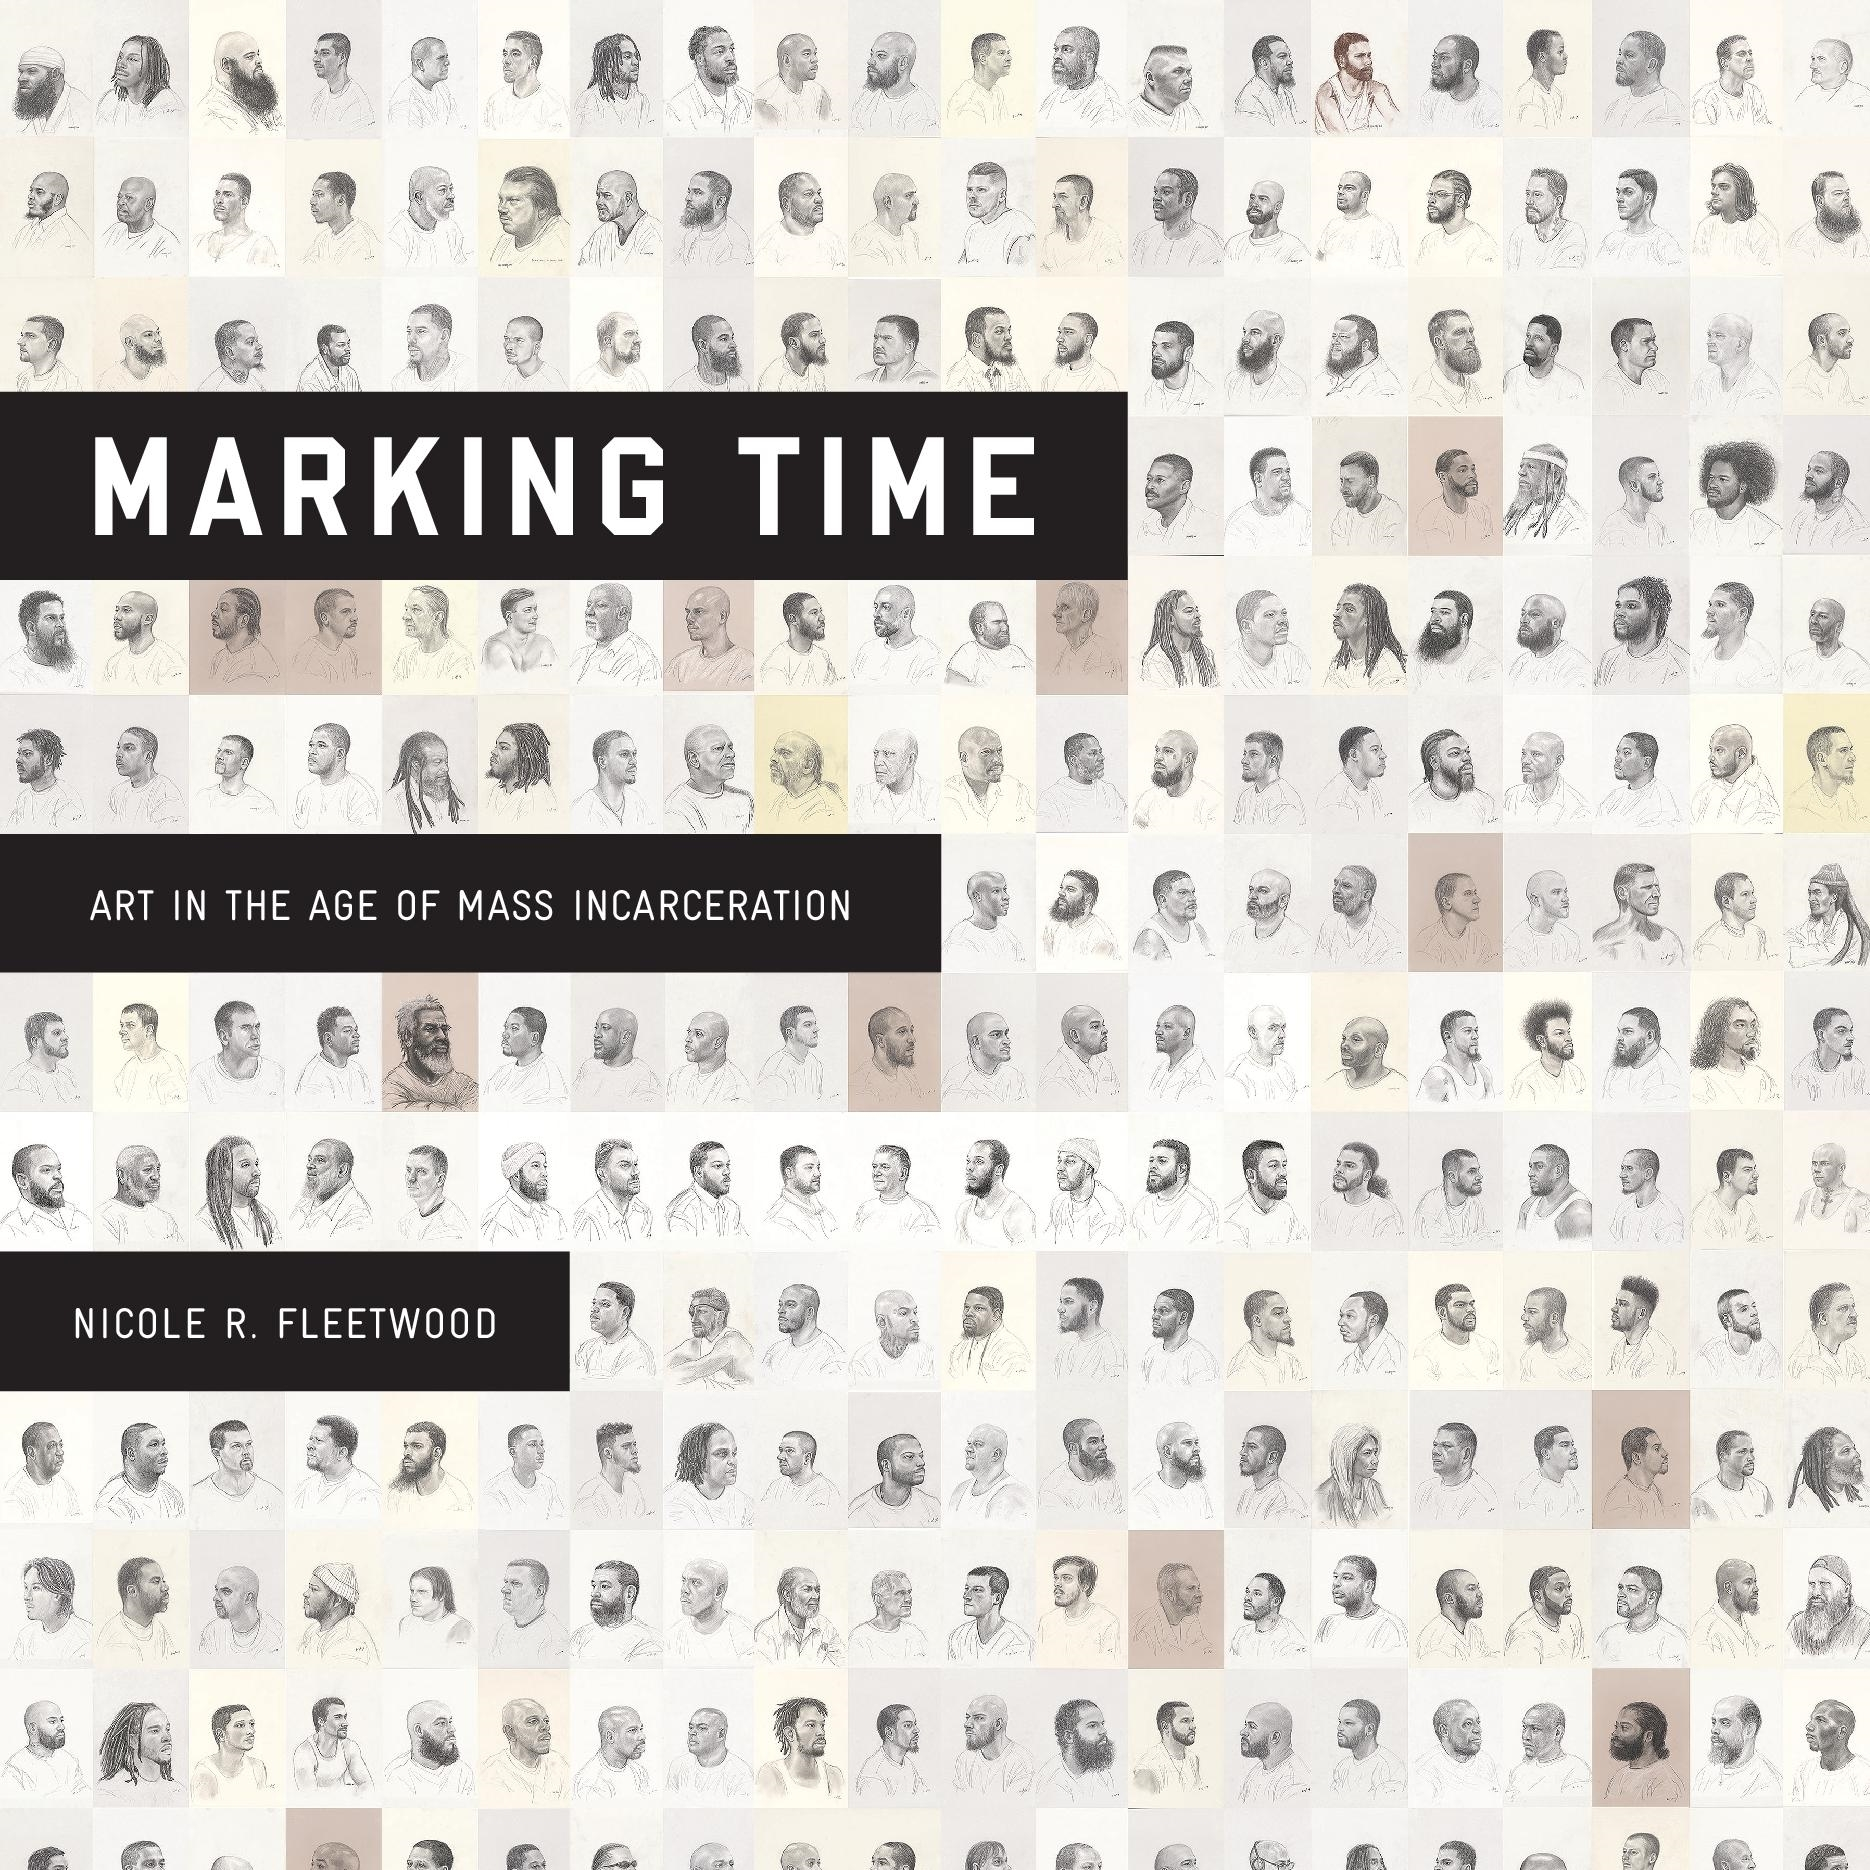 Marking Time's book cover; a grid of multiple small illustrated portraits of black men.